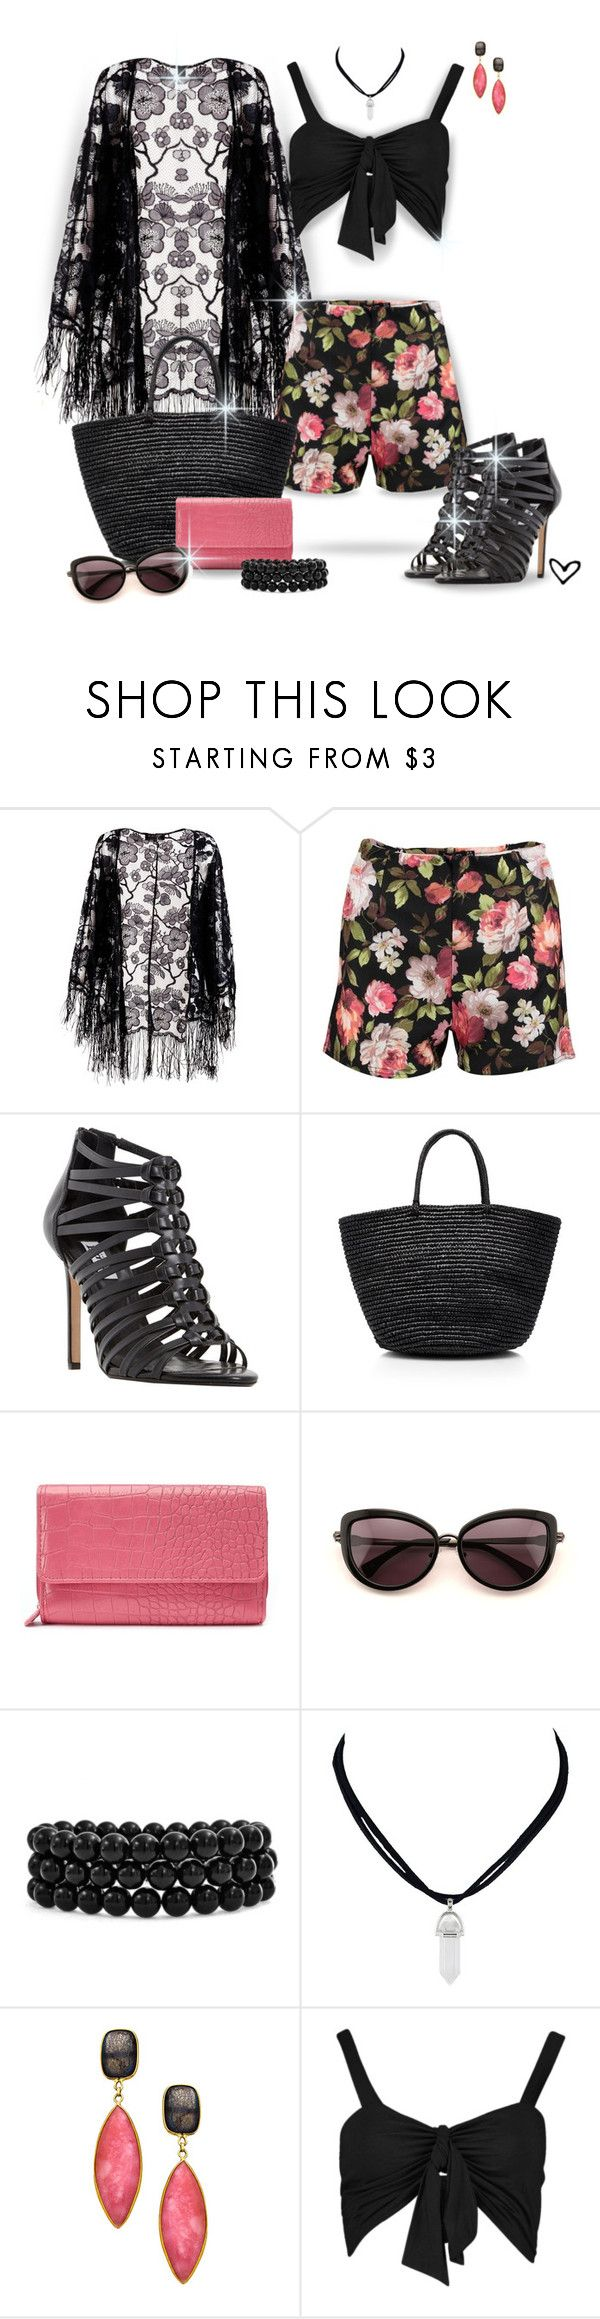 """""""~Boohoo~ Anni Floral Smart Shorts ~"""" by justwanderingon ❤ liked on Polyvore featuring Pussycat, Boohoo, Dune, Sensi Studio, Croft & Barrow, Wildfox, Bling Jewelry, Tresor and Floralshorts"""